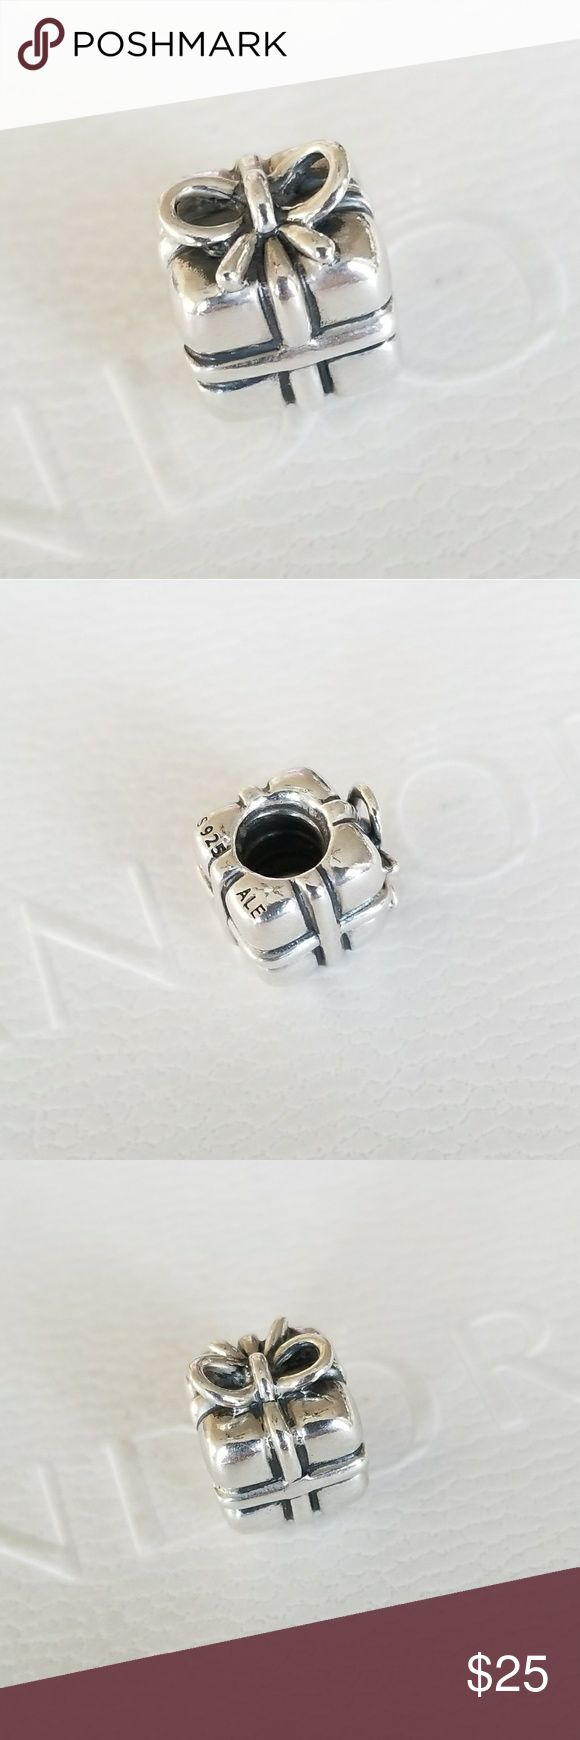 Pandora Gift Box Present Silver Charm DISCONTINUED, Retired Present, Sterling Silver Item No. 790300  100% Authentic Pandora  Good used condition  Properly Stamped  Pandora stores offer lifetime free cleaning  No box included  Fast shipping Pandora Jewelry Bracelets #sterlingsilverjewelrycleaning